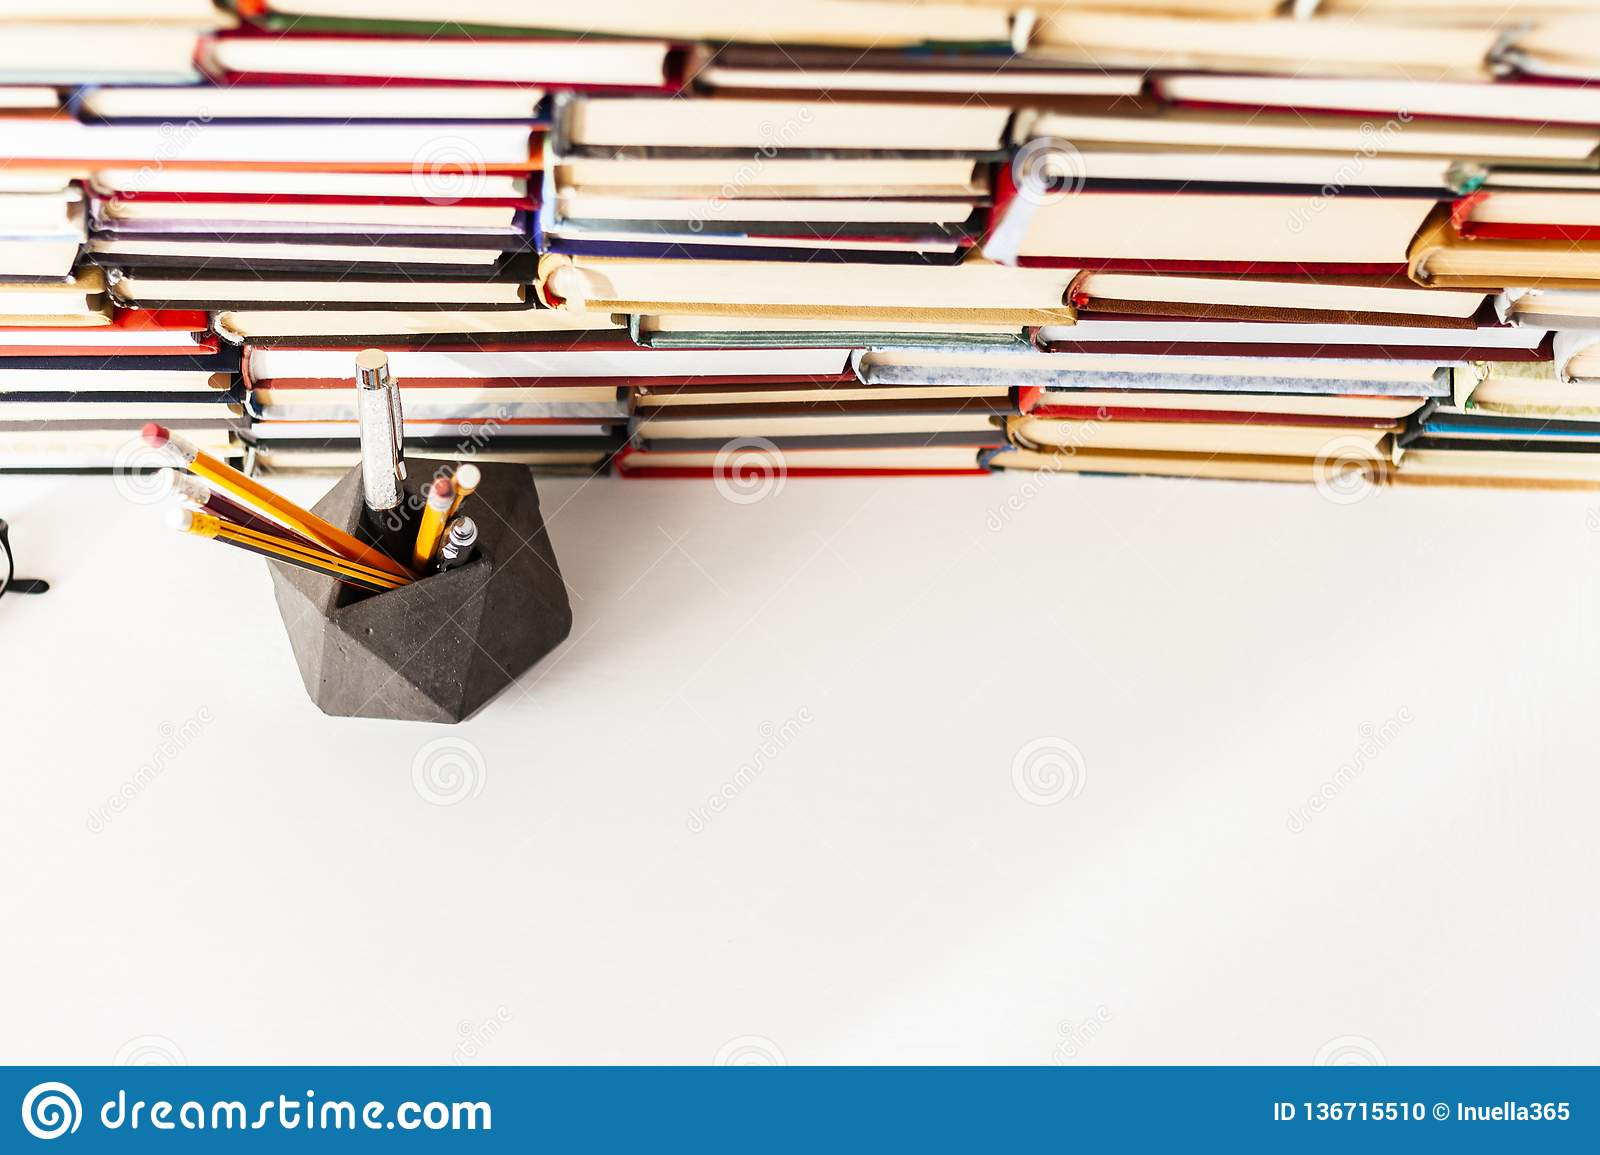 Books background, glasses, pens and pencils on white wooden table